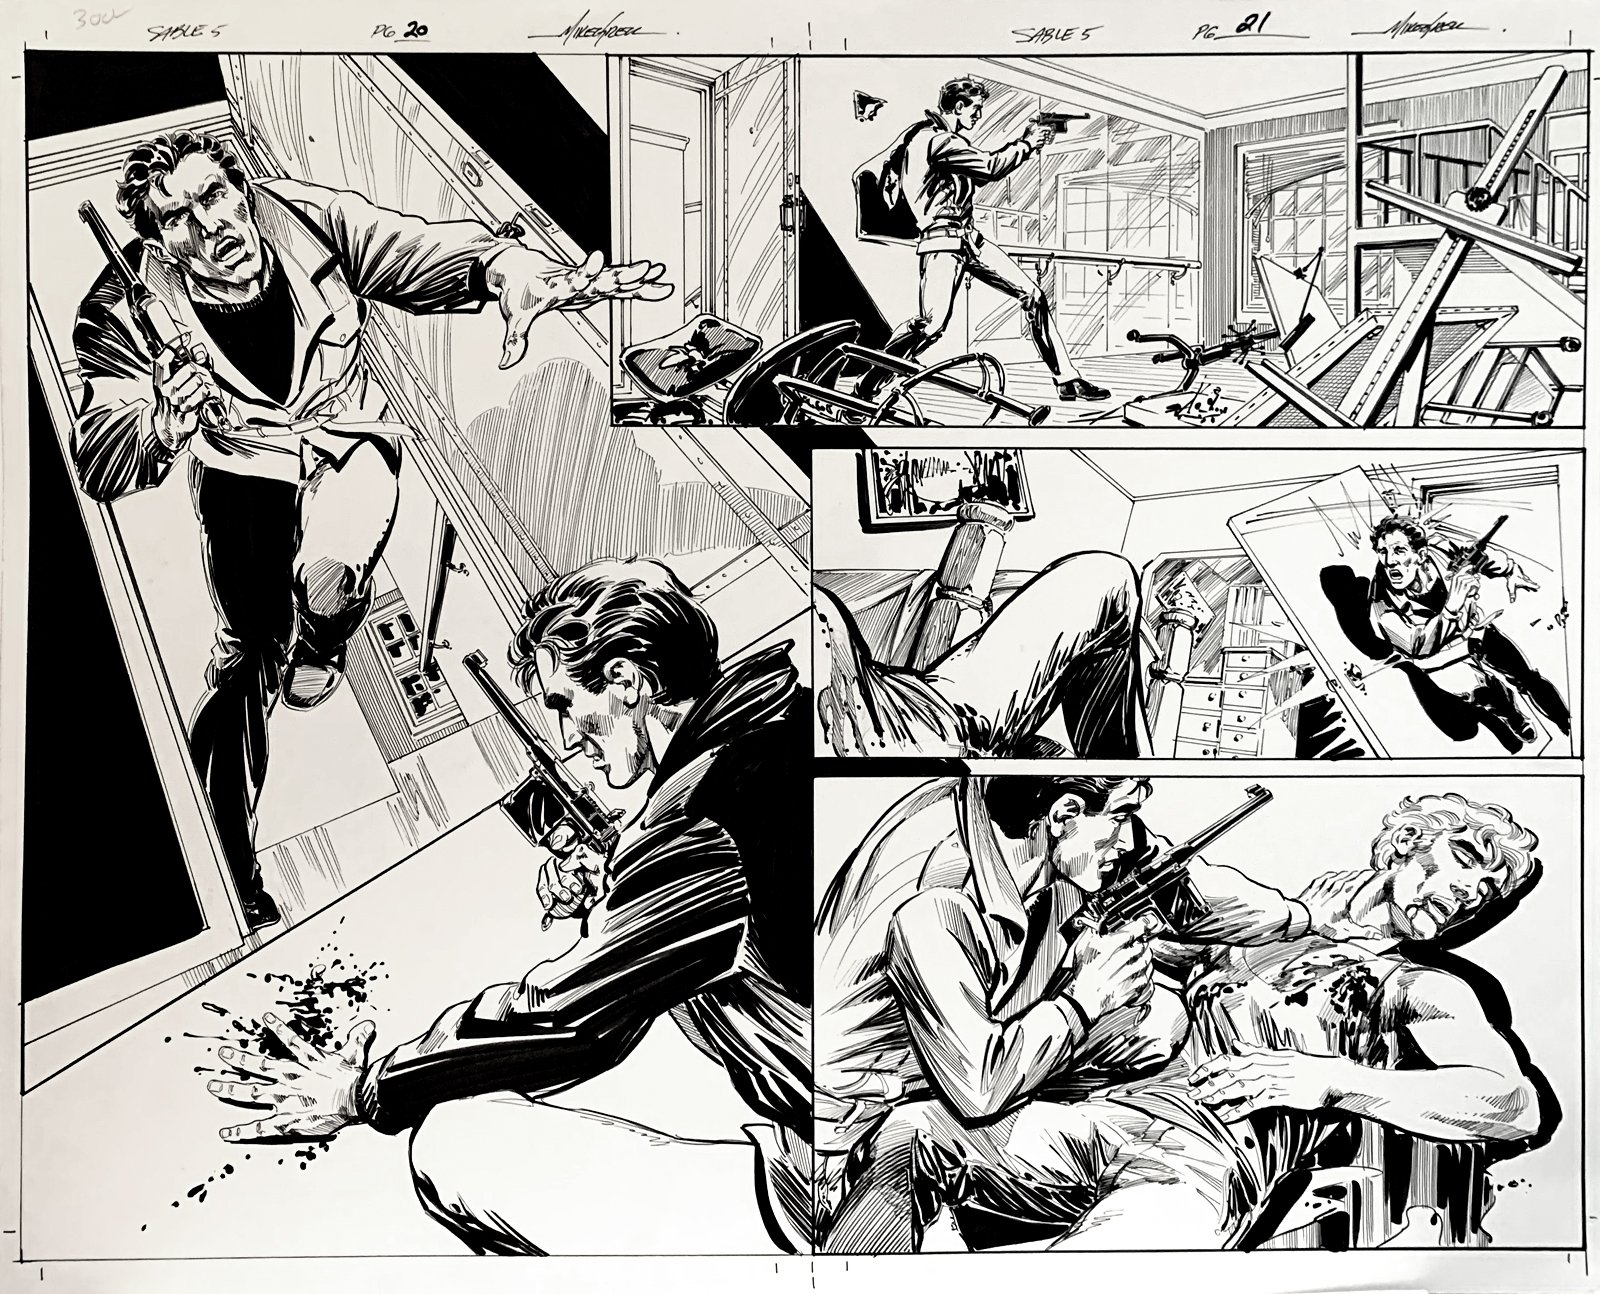 Jon Sable, Freelance: Bloodtrail #5 p 20-21 Huge Double Page Spread On 1 Large Board! (2005)